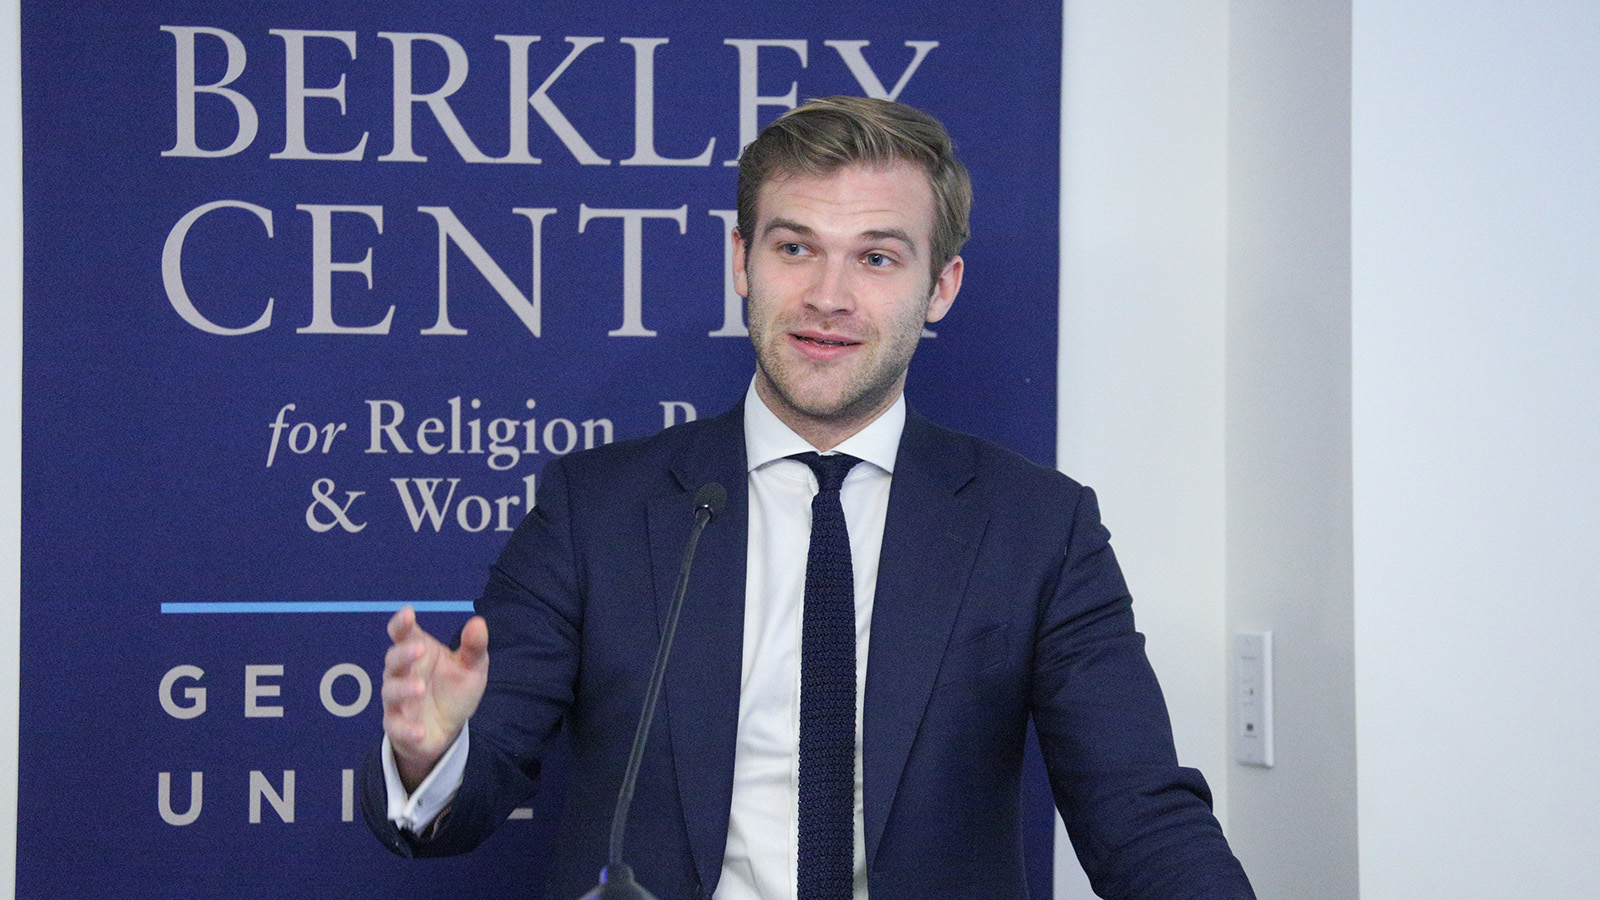 Tobias Cremer, visiting researcher at the Berkley Center, presents on national populism and religion in the West.